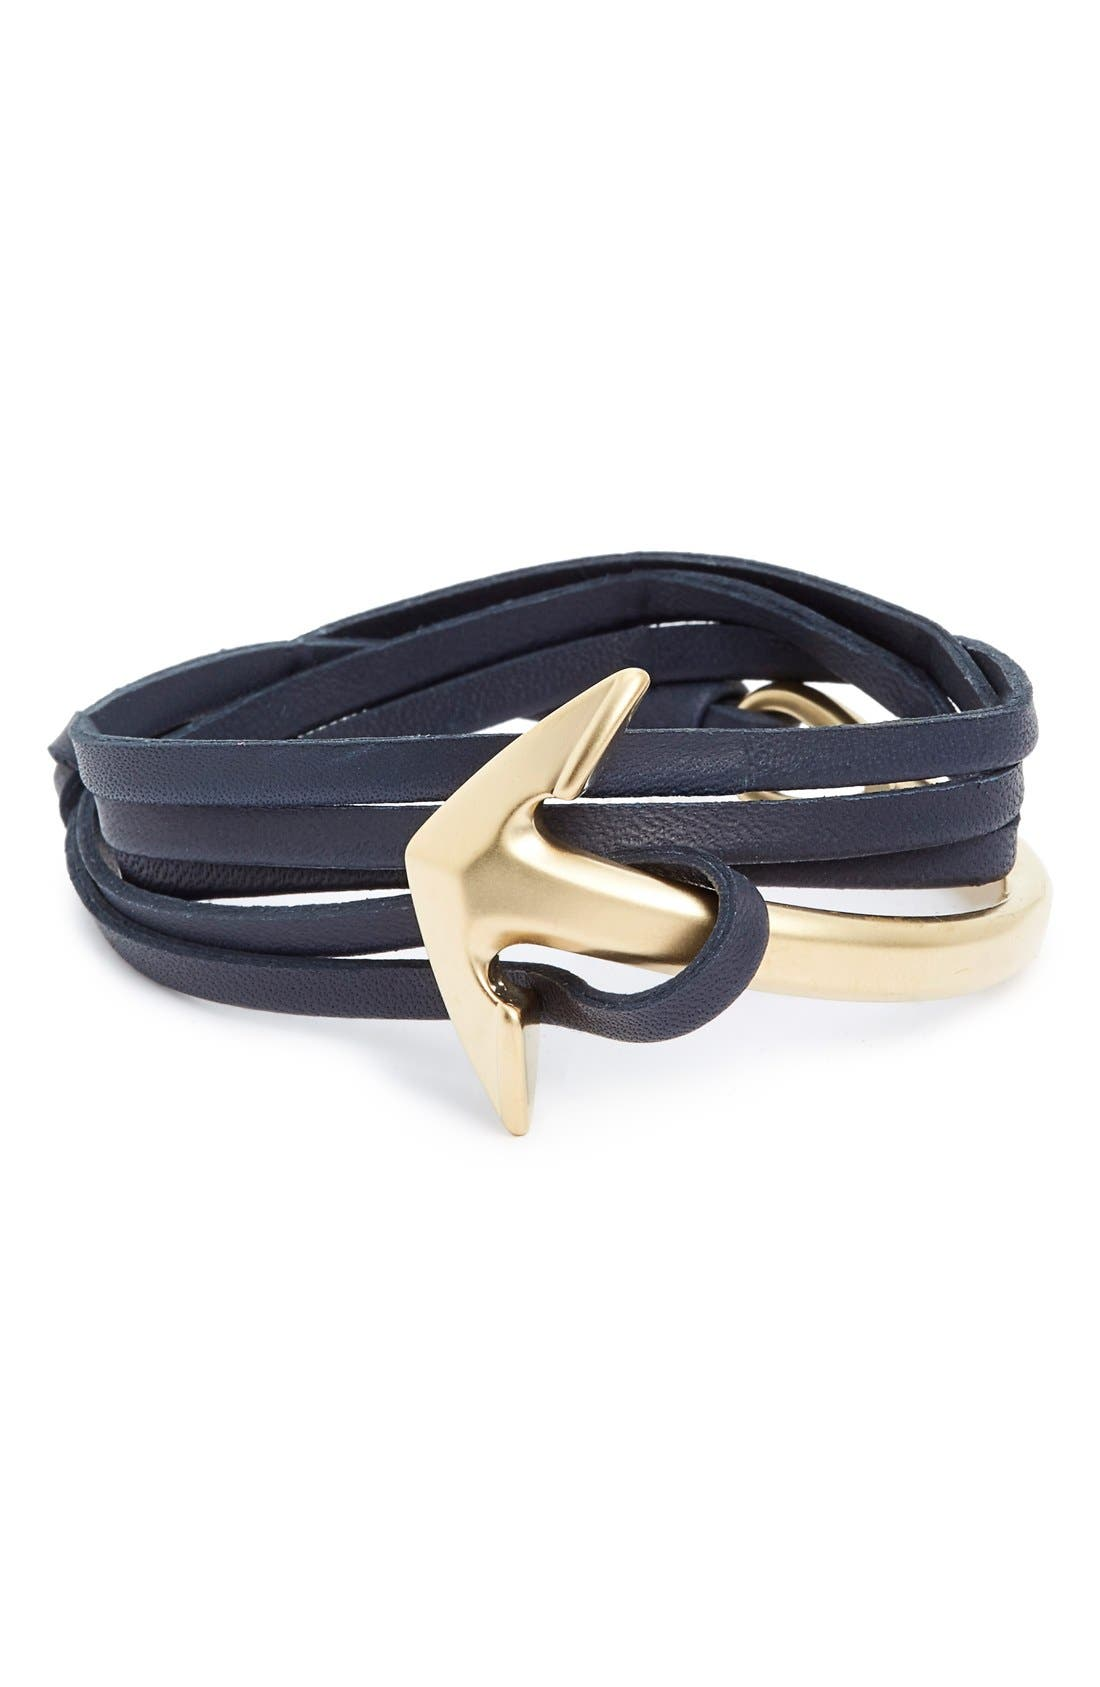 Half Cuff Anchor Leather Wrap Bracelet,                         Main,                         color, Navy/ Brushed Gold